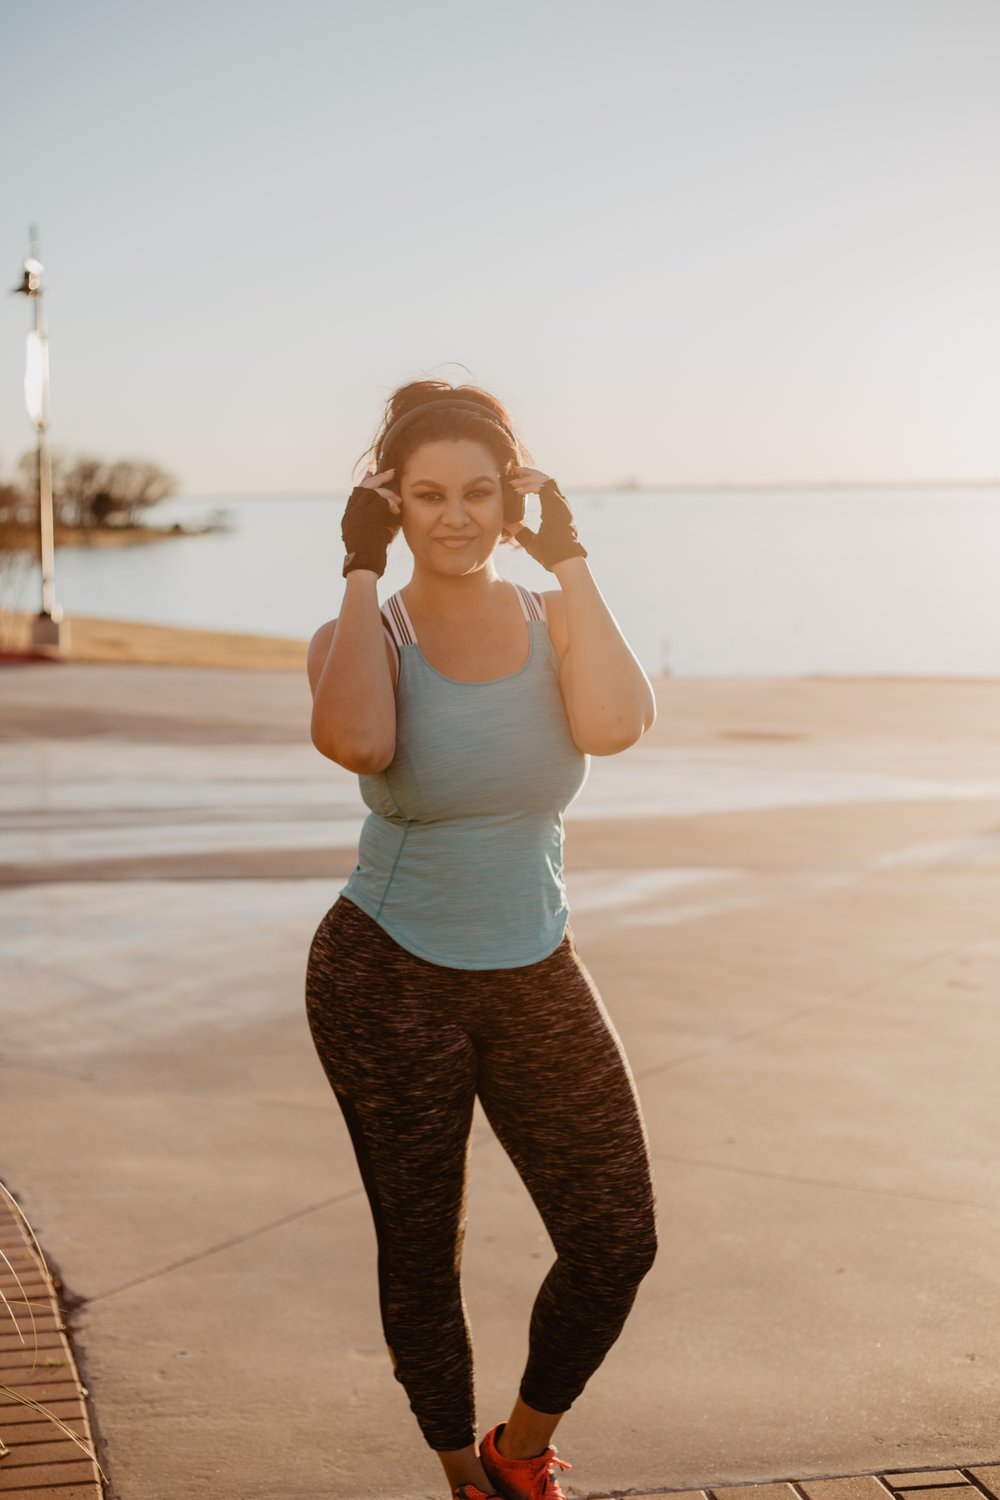 Outfit Deets - Turquoise 3-Stripe X-Back Top: AdidasNoise-Cancelling Bluetooth Headphones: AKGGloves: AcademyPants: Bally Total FitnessShoes: Brooks Levitate Running